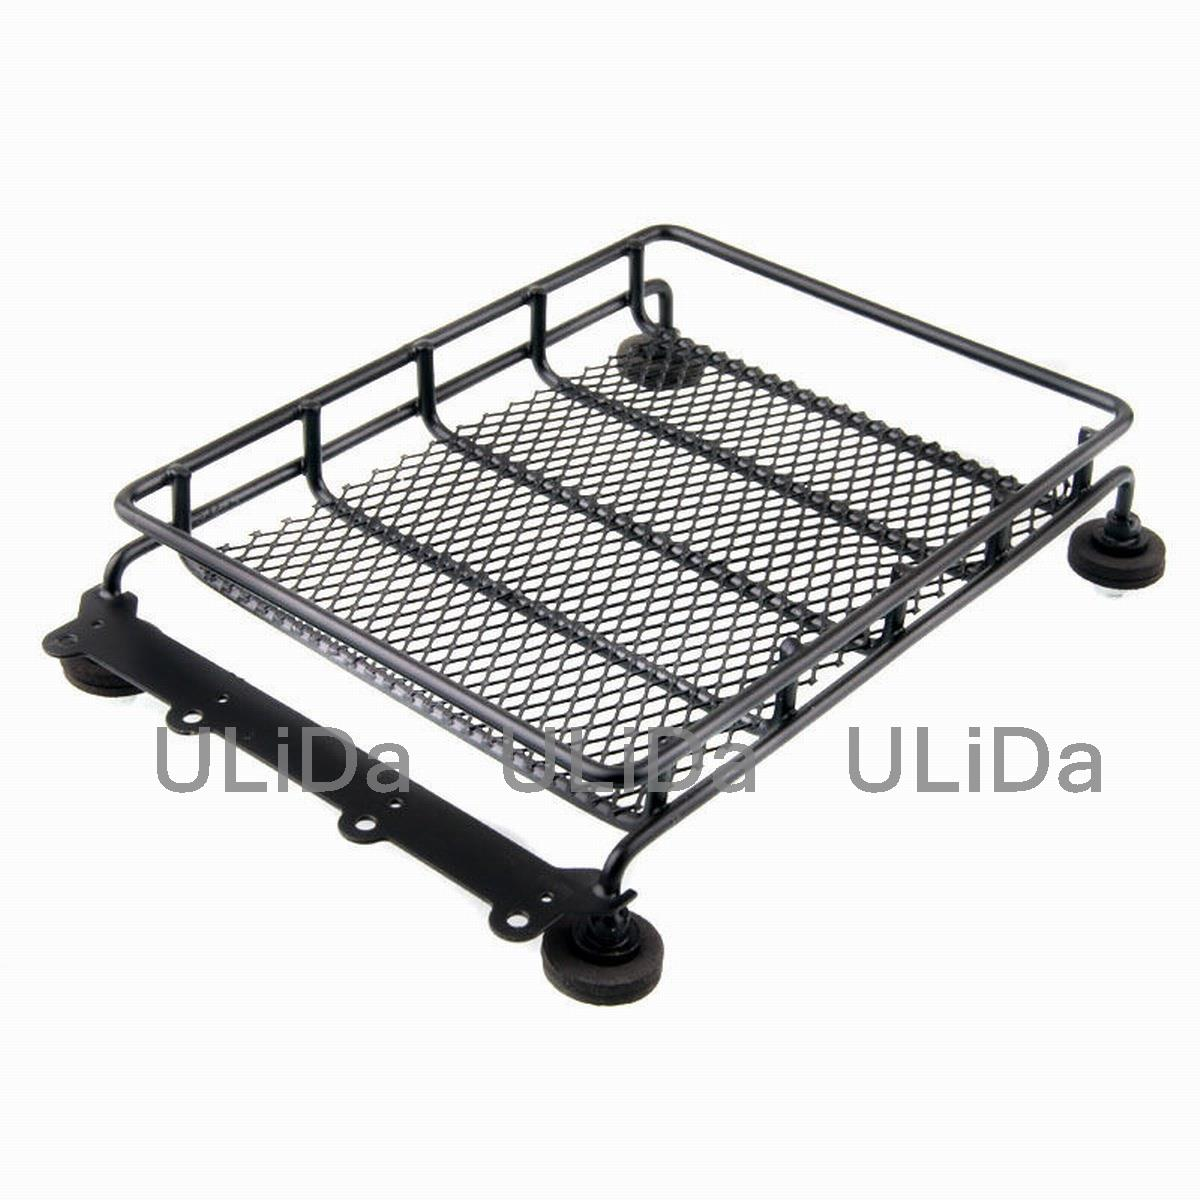 Aluminum Luggage Tray Roof Rack (L) For 110 RC Car Truck Tamiya Axial bbq fuka 2pcs car aluminum abs silver luggage carrier top roof rack cross bars fit for compass 2017 car styling car accessories